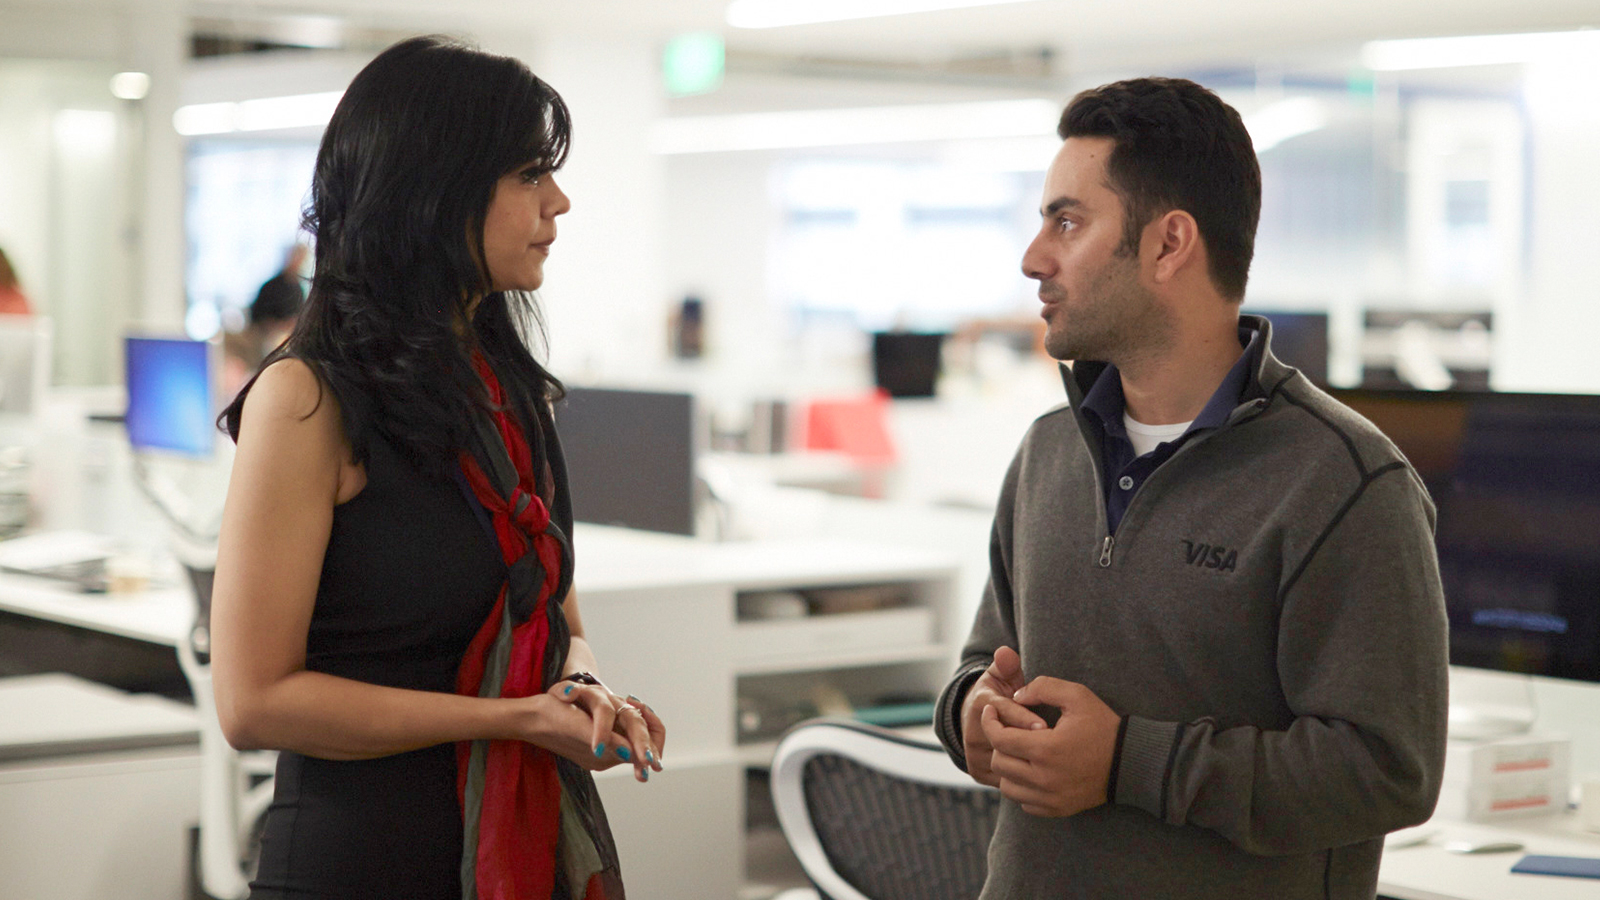 Woman and man discussing topic in office